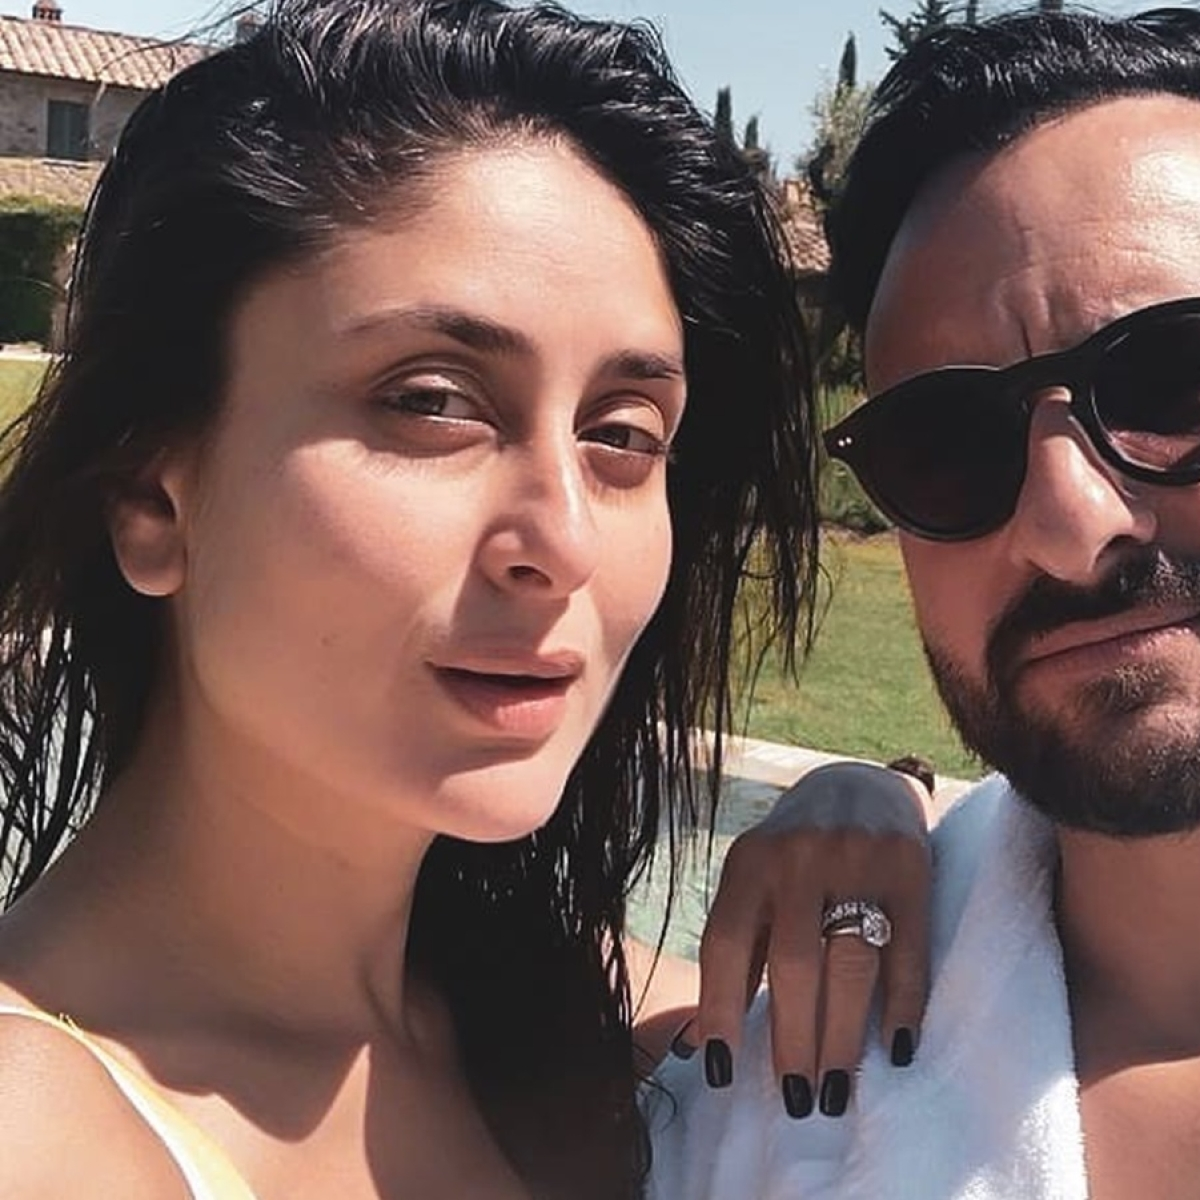 Saif Ali Khan reveals wife Kareena Kapoor's due date for their second child